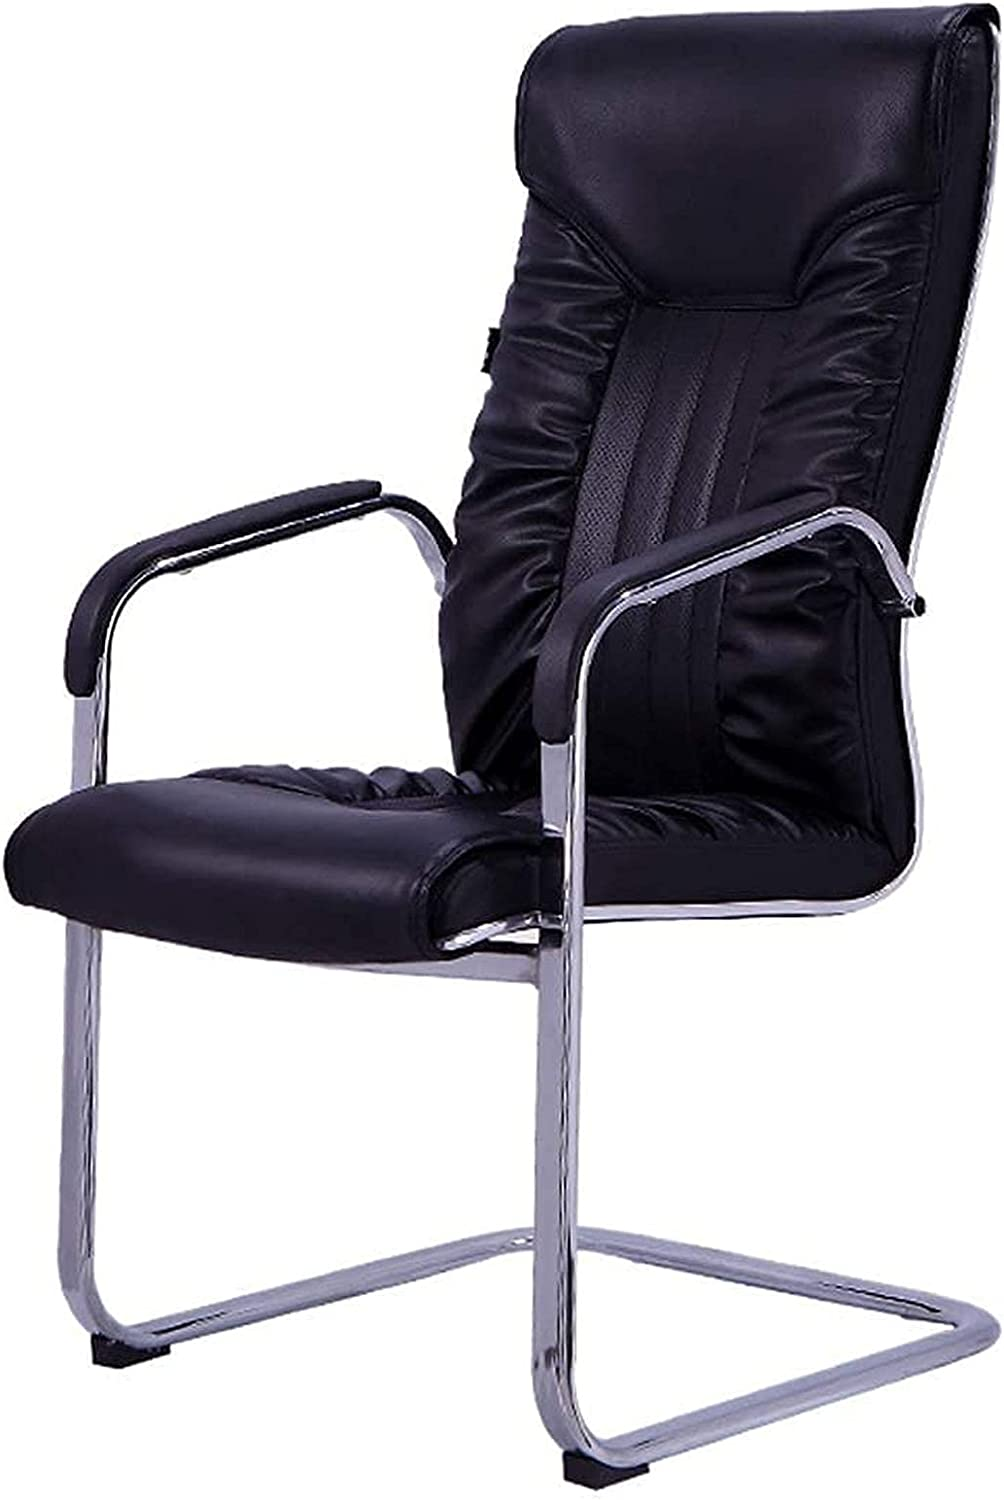 Stool Chairs Desk,Office Desk Ergonomic Computer Mo Challenge the lowest price Leather 5 ☆ very popular Pu